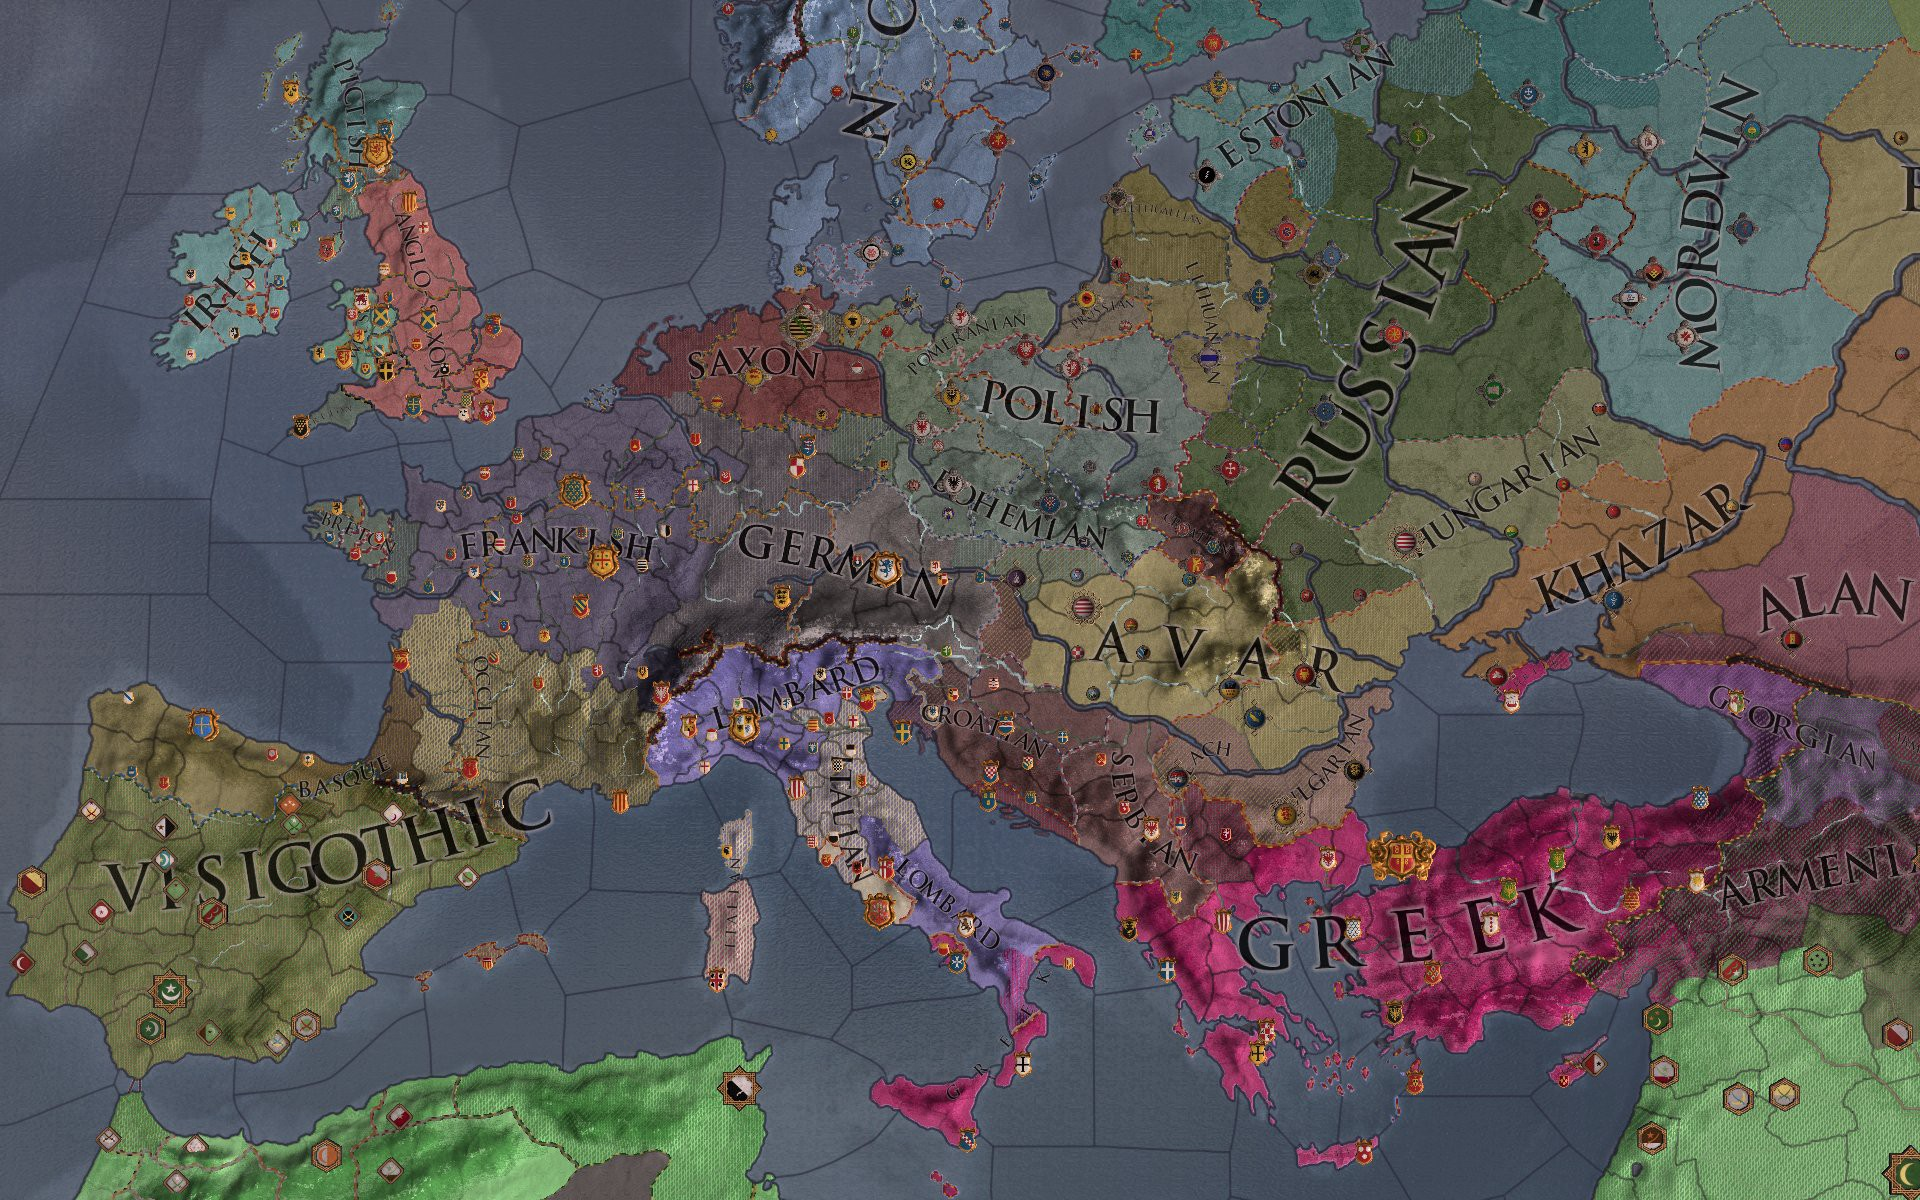 crusader_kings_ii map